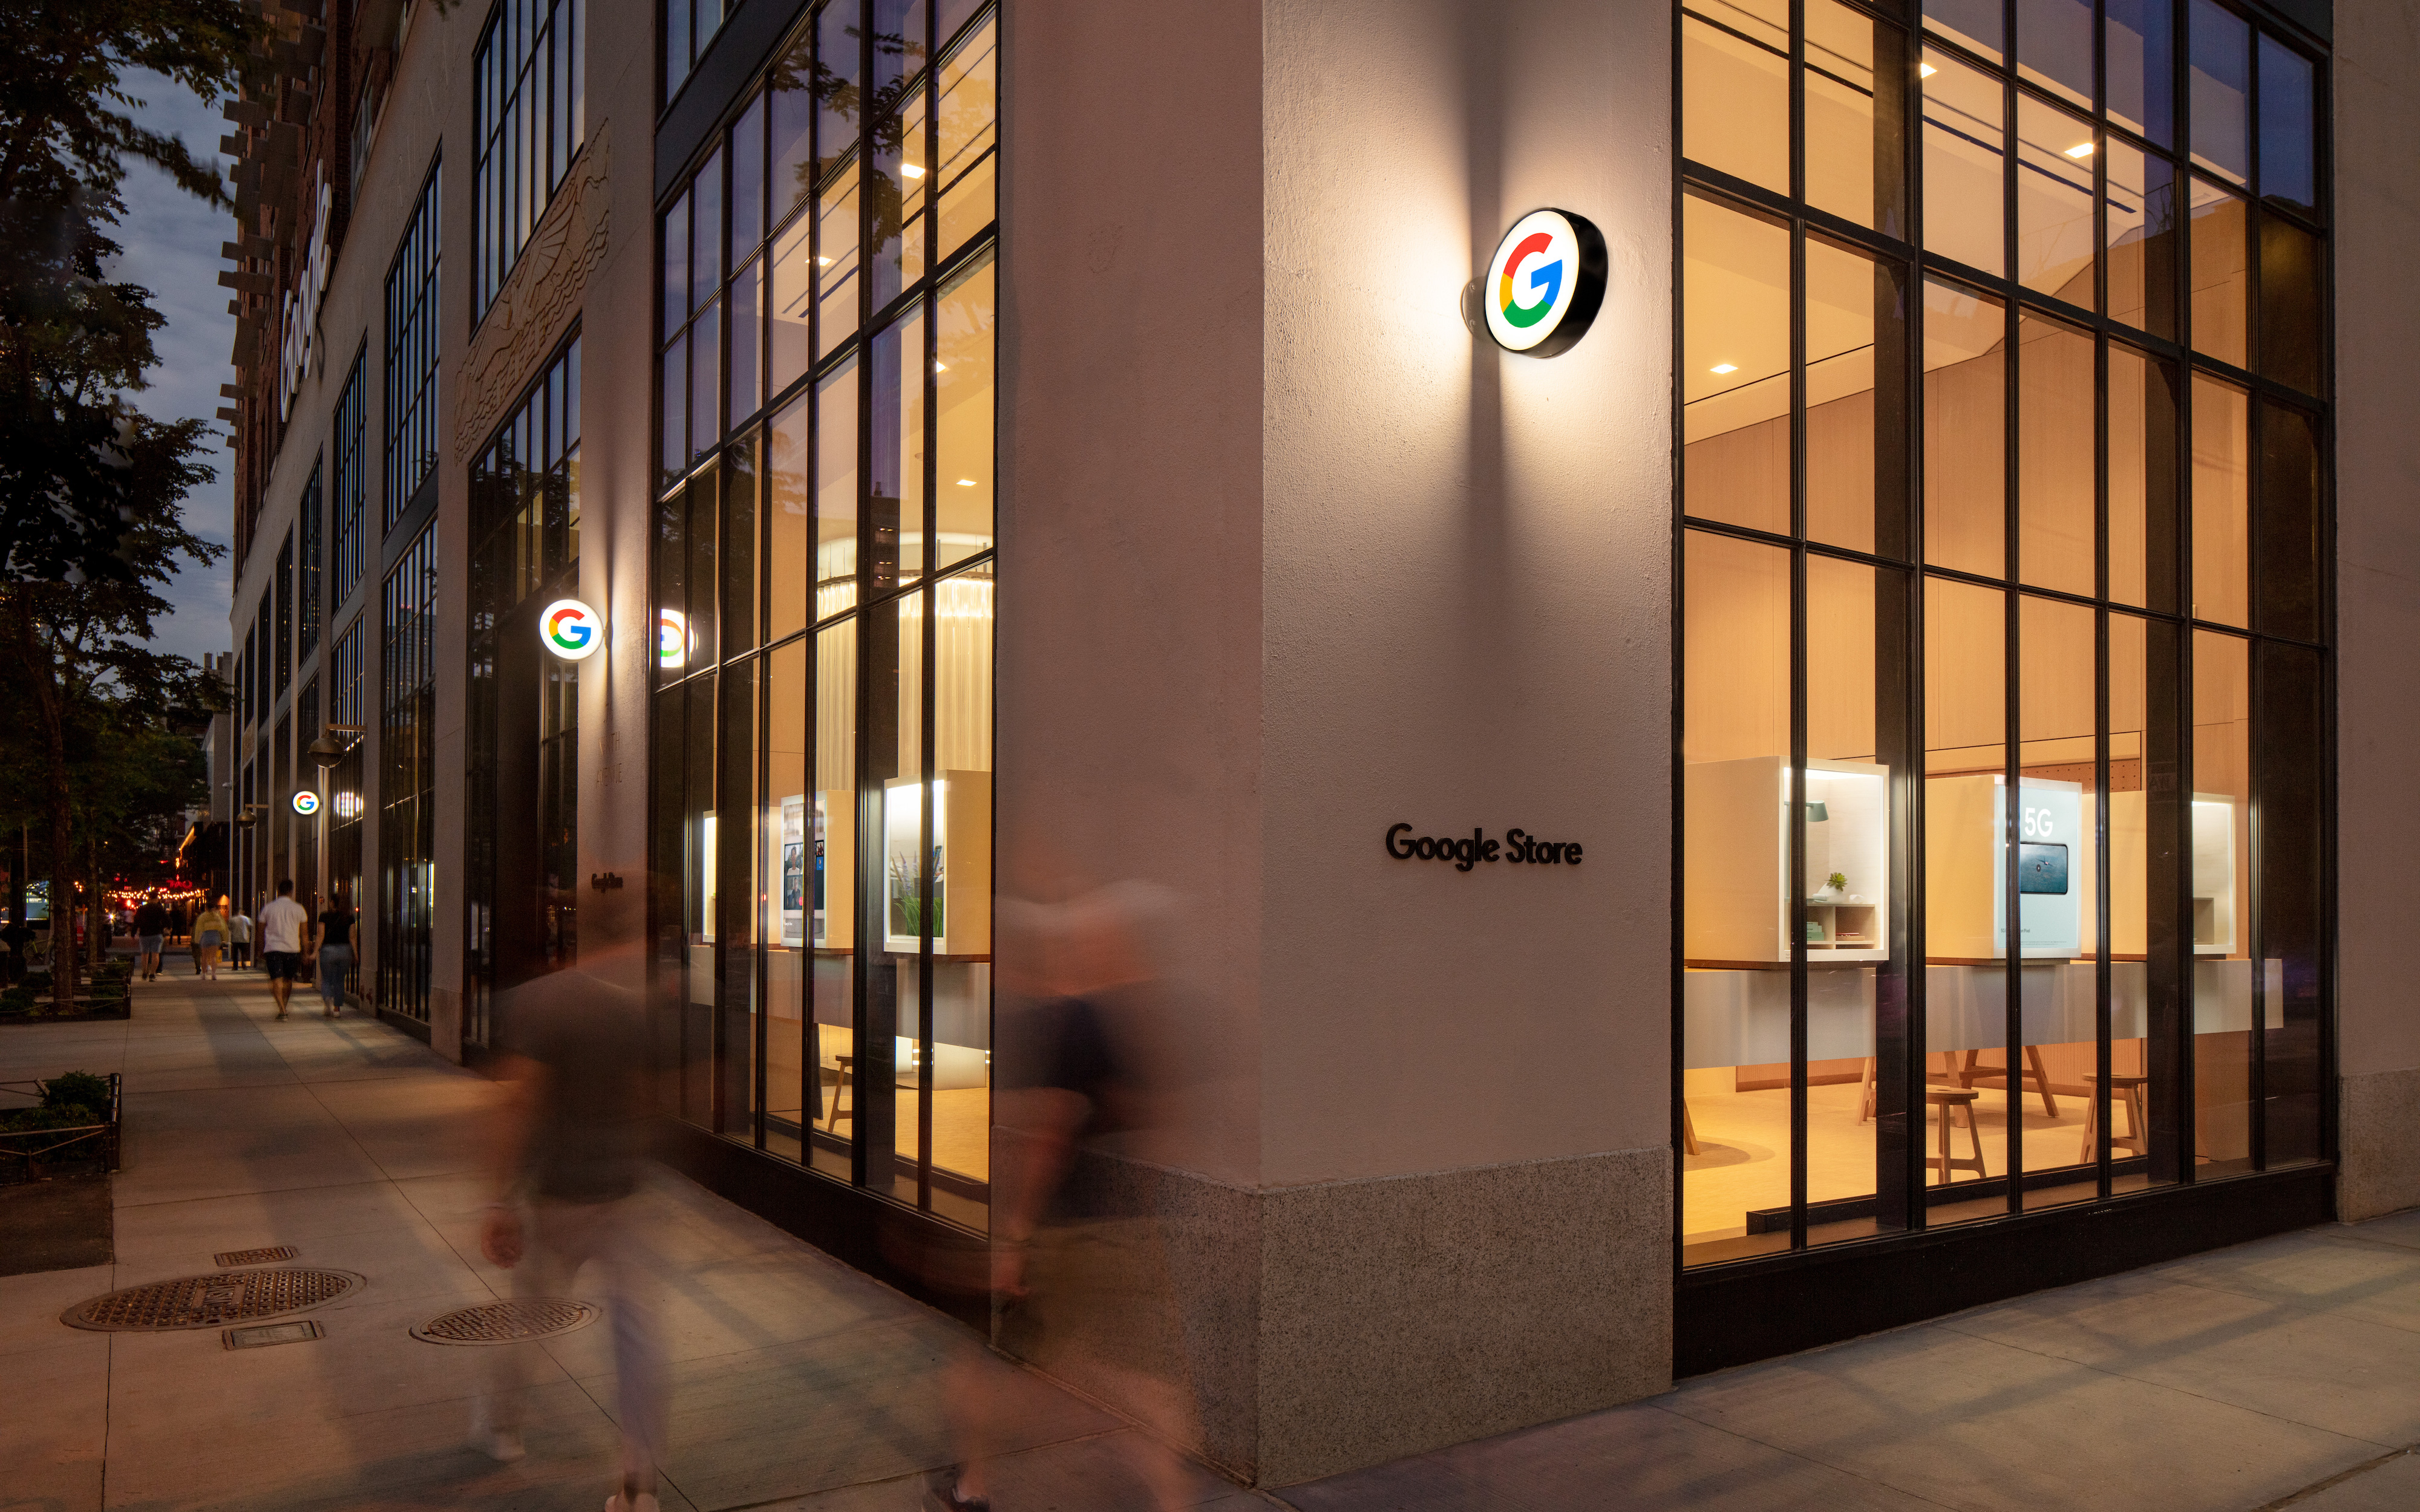 Here's a tour of the first Google Store in New York City [Gallery] - 9to5Google thumbnail